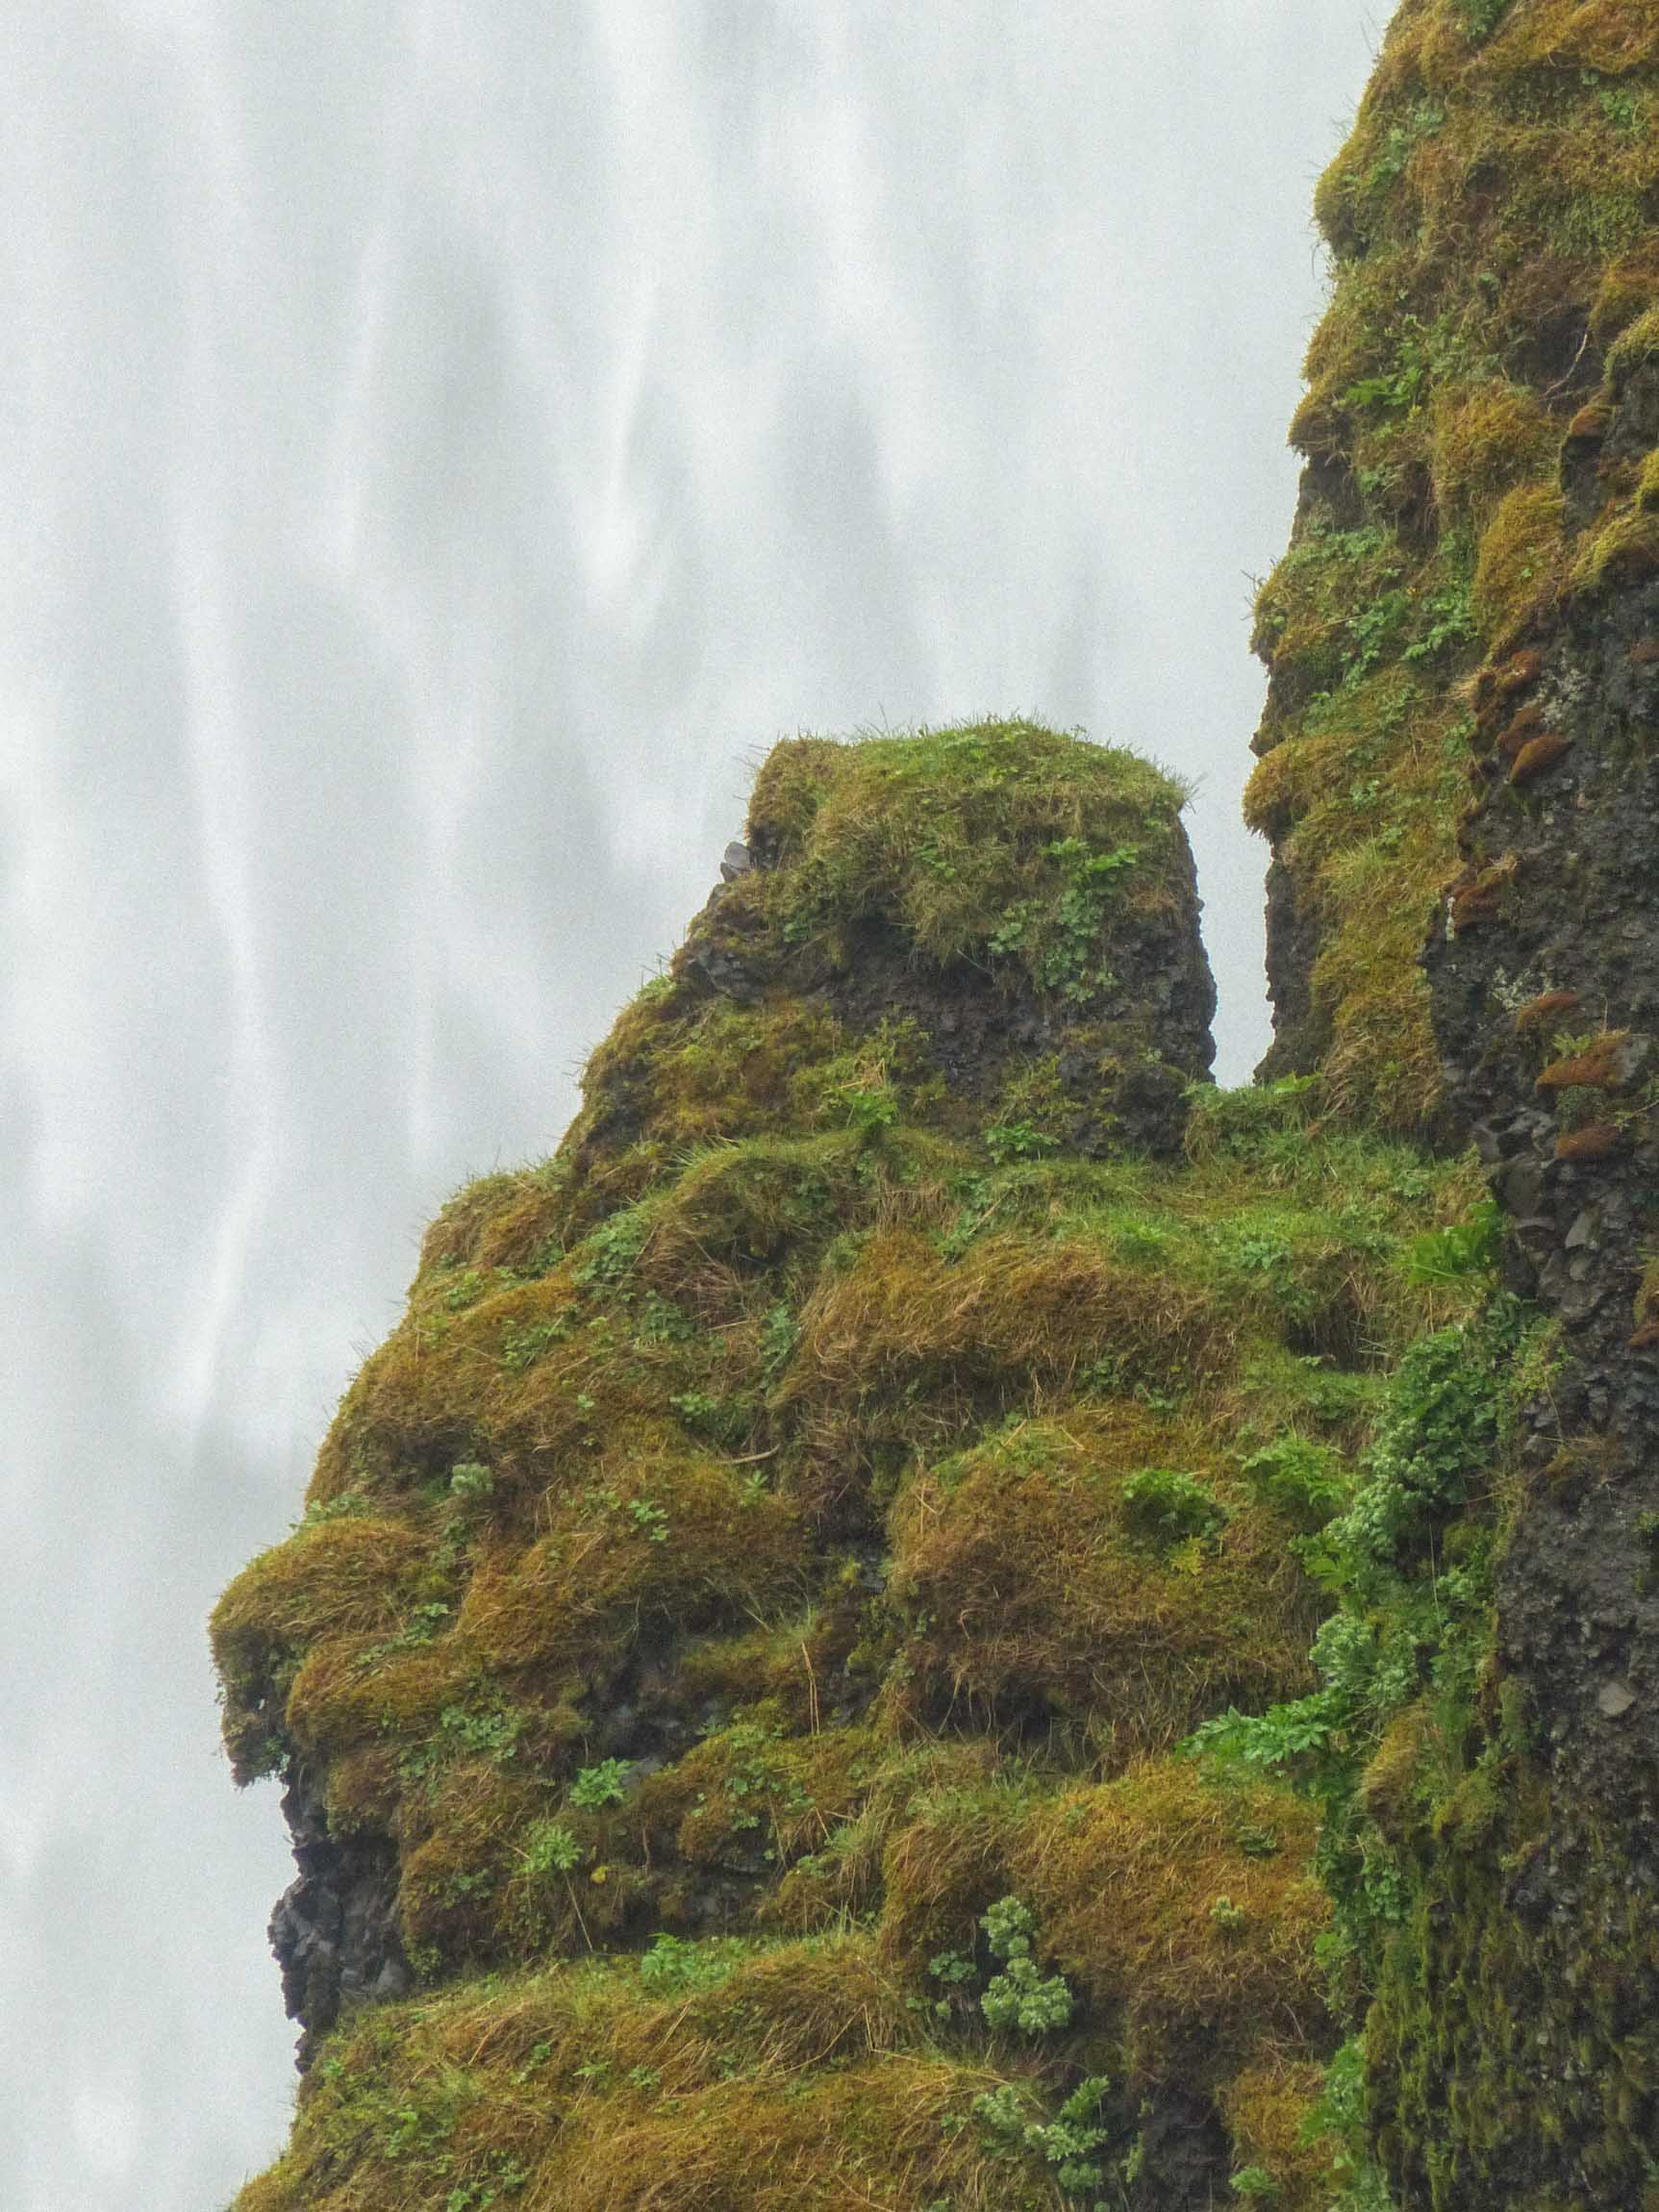 Mossy rocks in front of waterfall